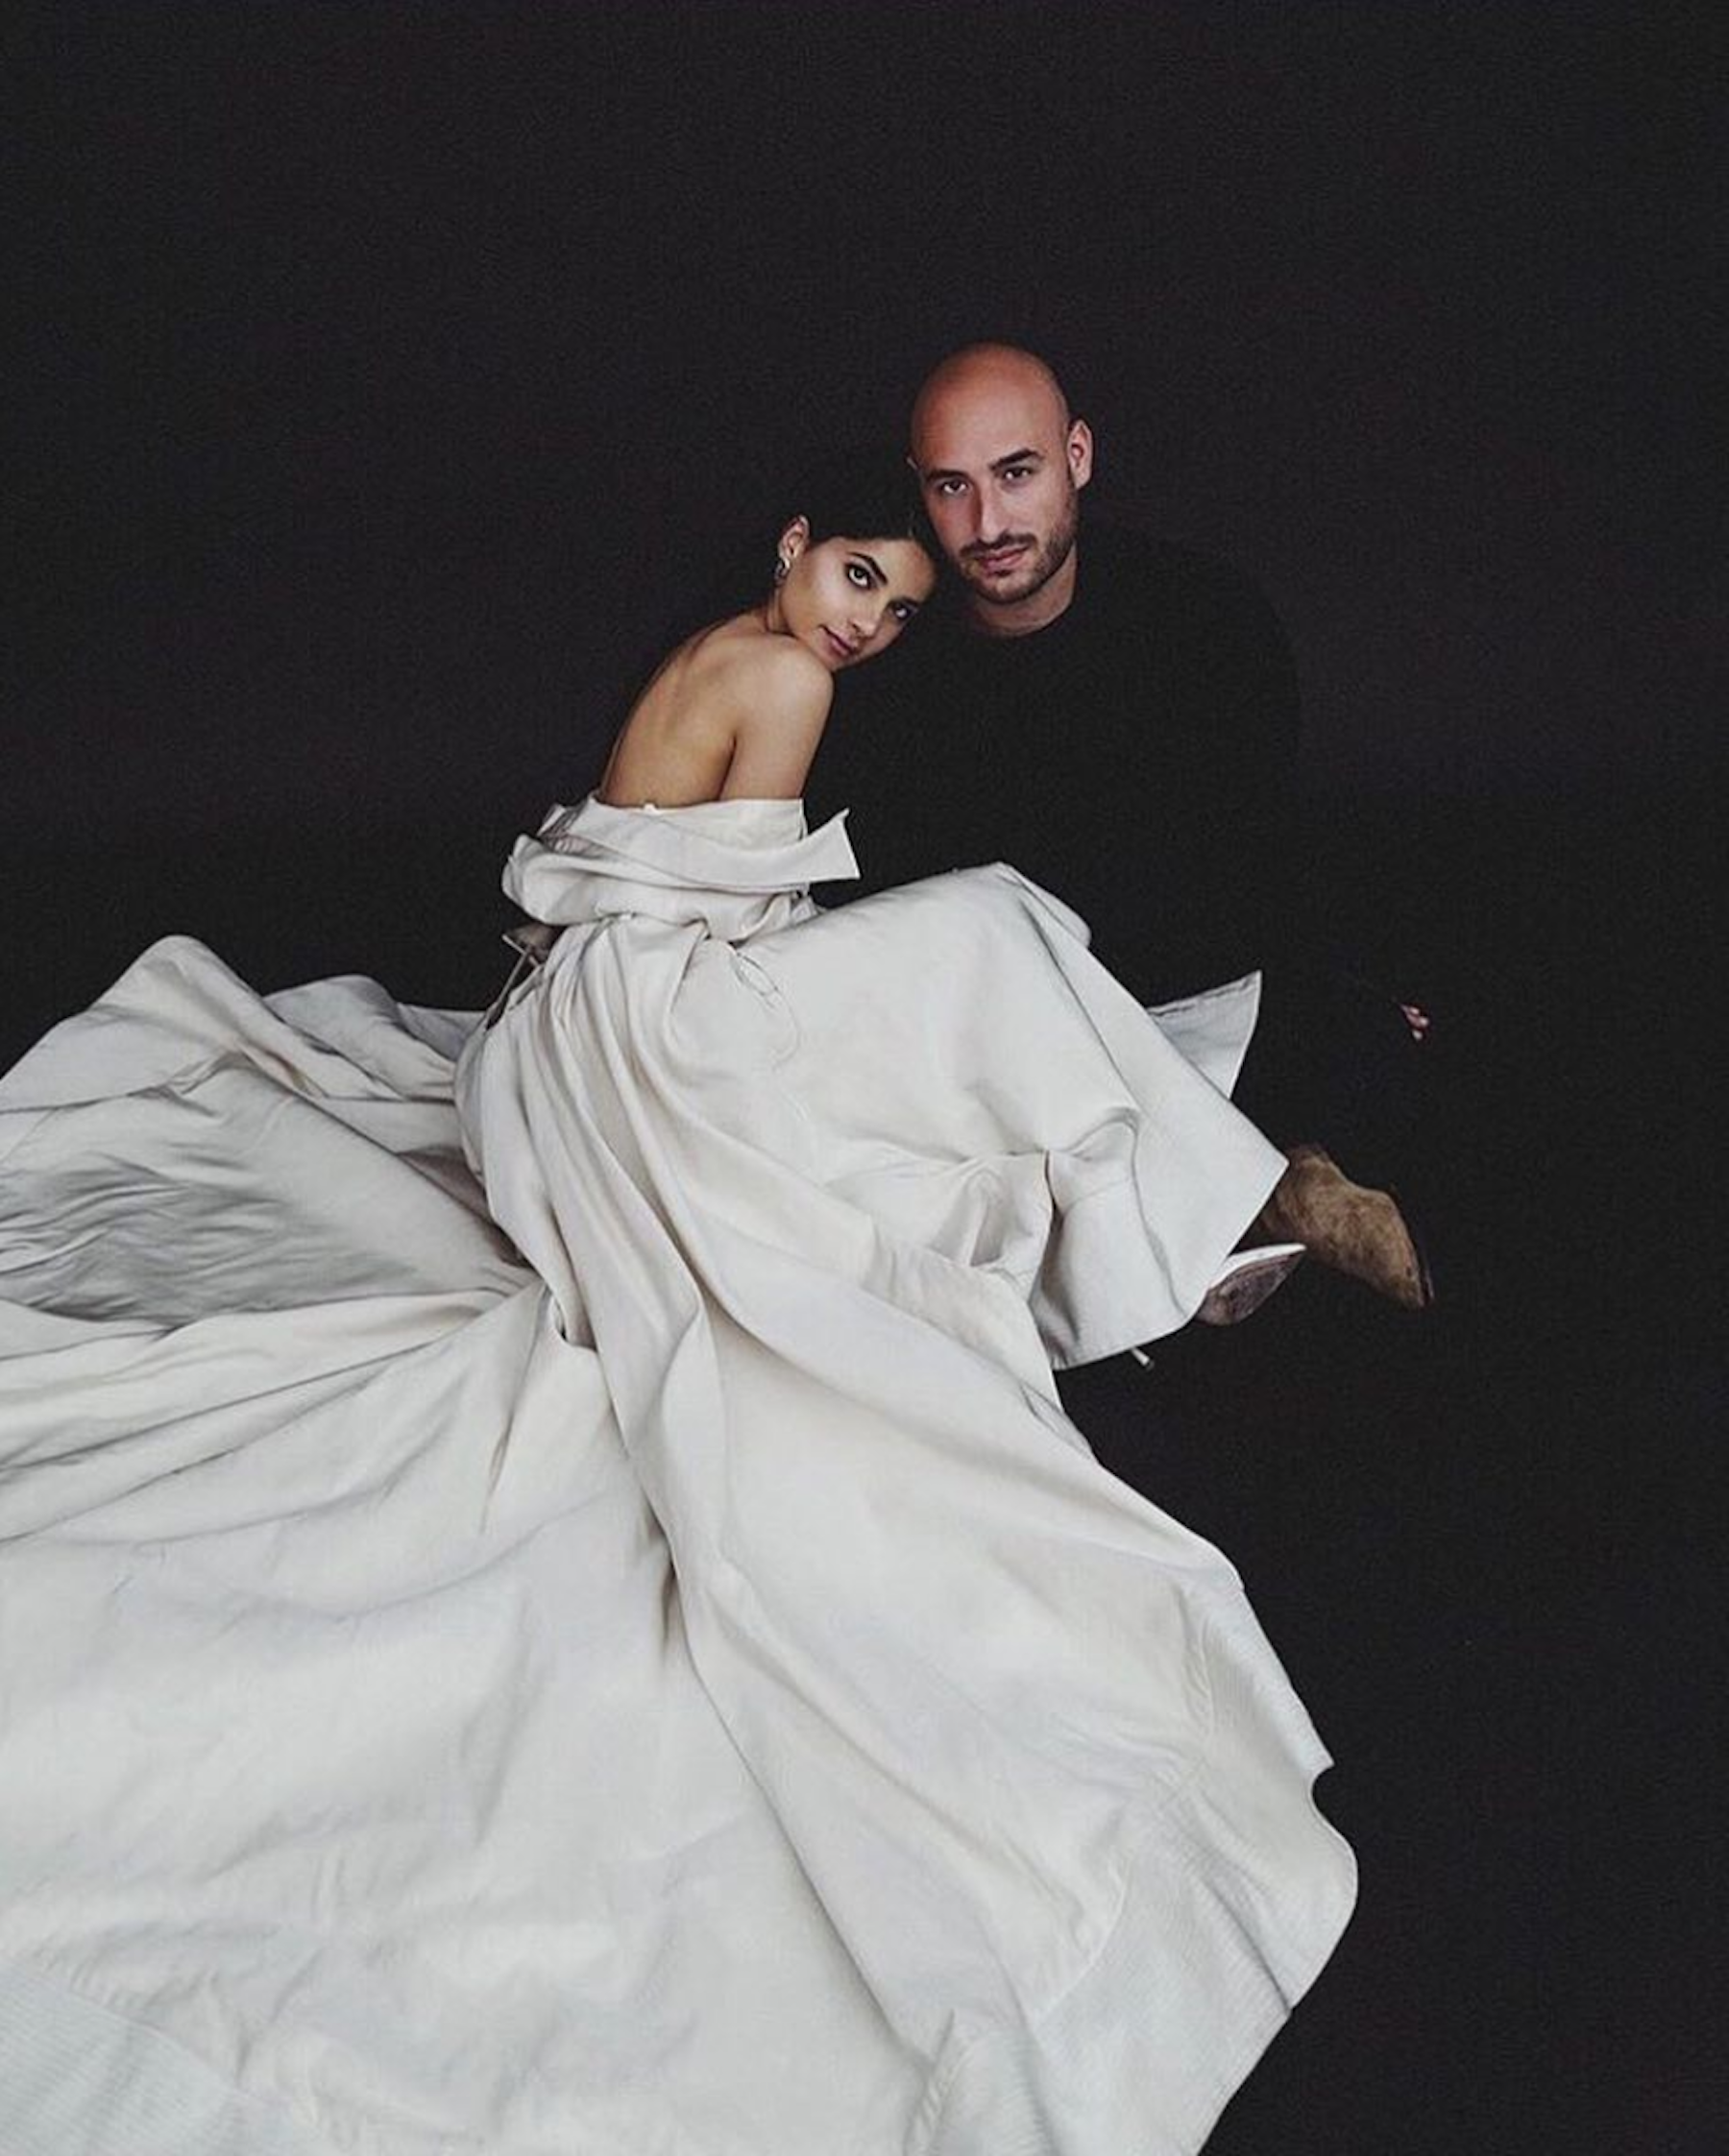 Lainy Hedaya wears Danielle Frankel Studio. - Hard to believe that this stunning capture is from an engagement shoot, but it is. Lainy Hedaya and hubby posed for an intimate shot announcing their impending nuptials.Photo by Jackie Soffer & Shelly Schmool.